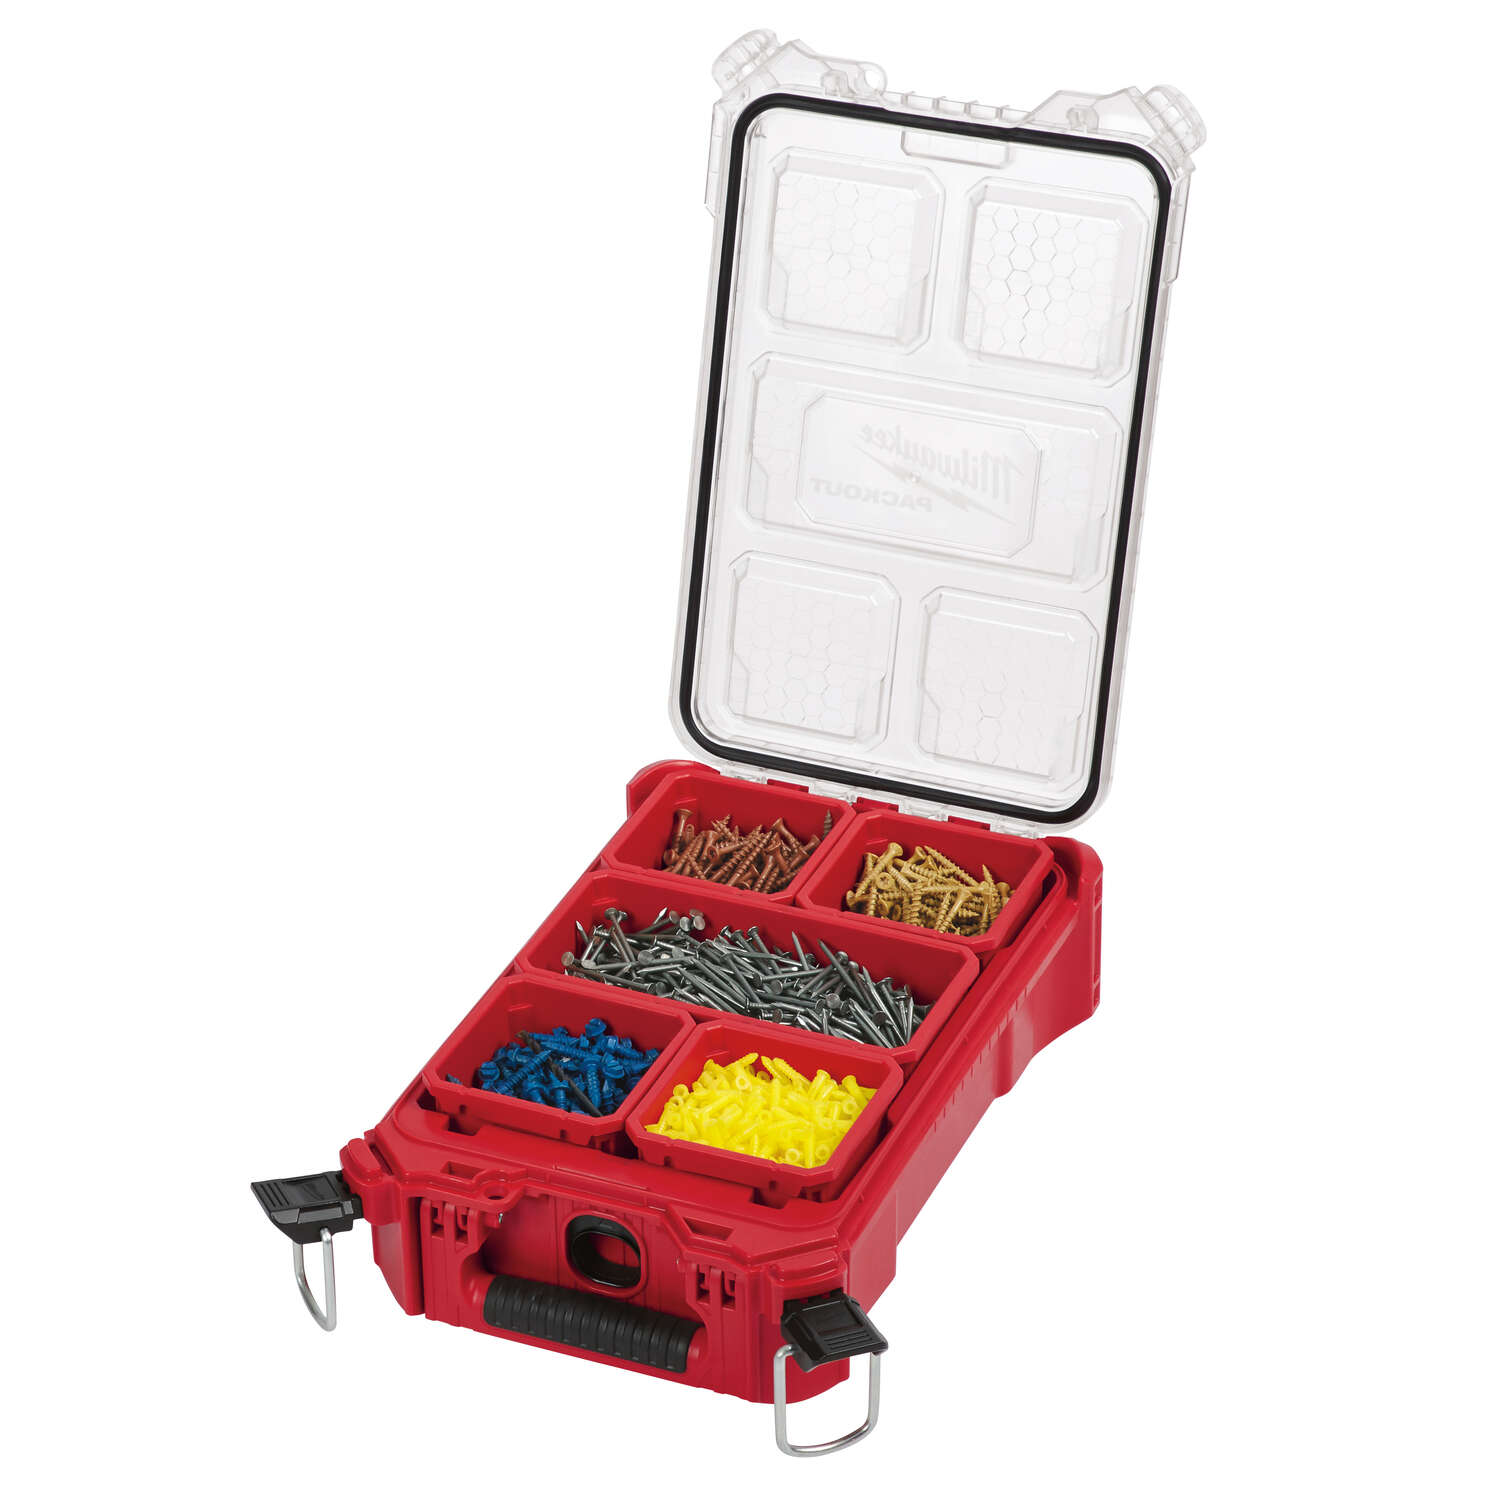 Milwaukee  PACKOUT  9.72 in. L x 15.24 in. W x 4.61 in. H Compact  Storage Organizer  5 pocket